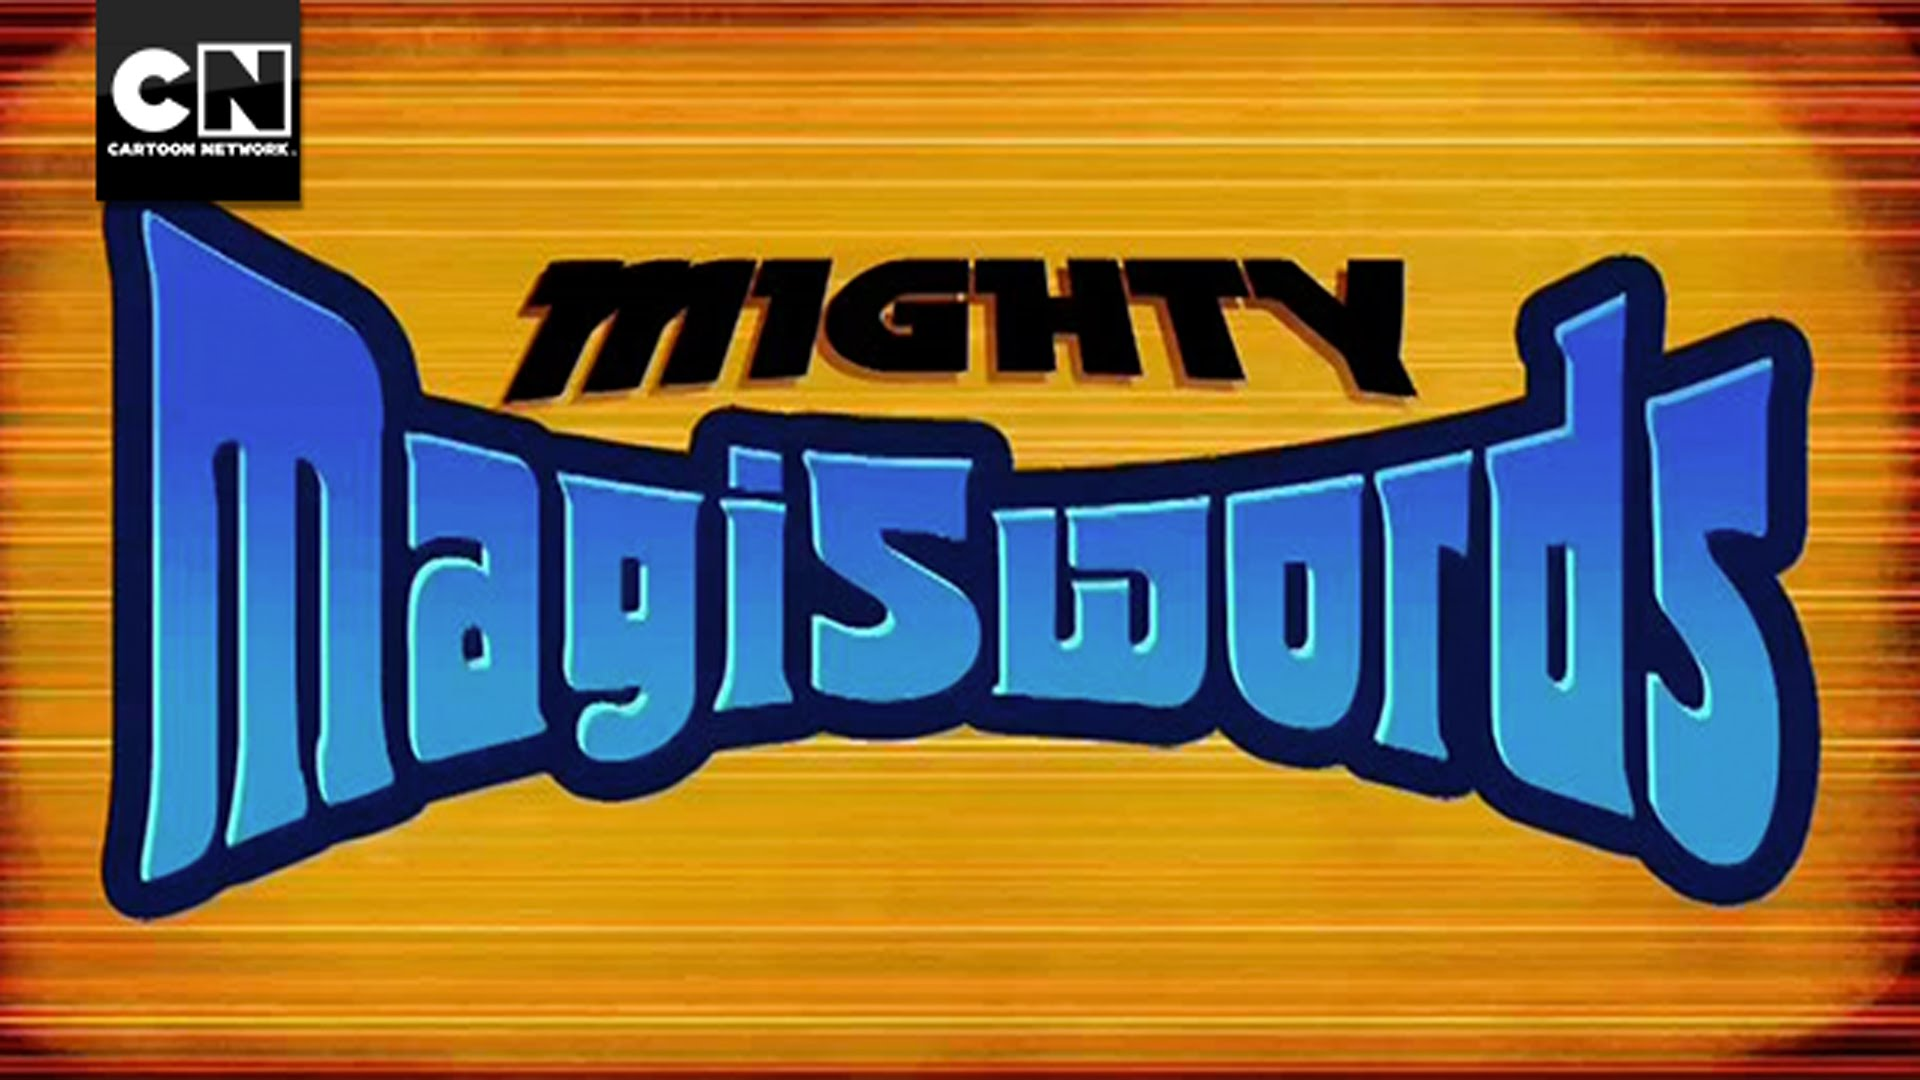 Mighty Magic Swords